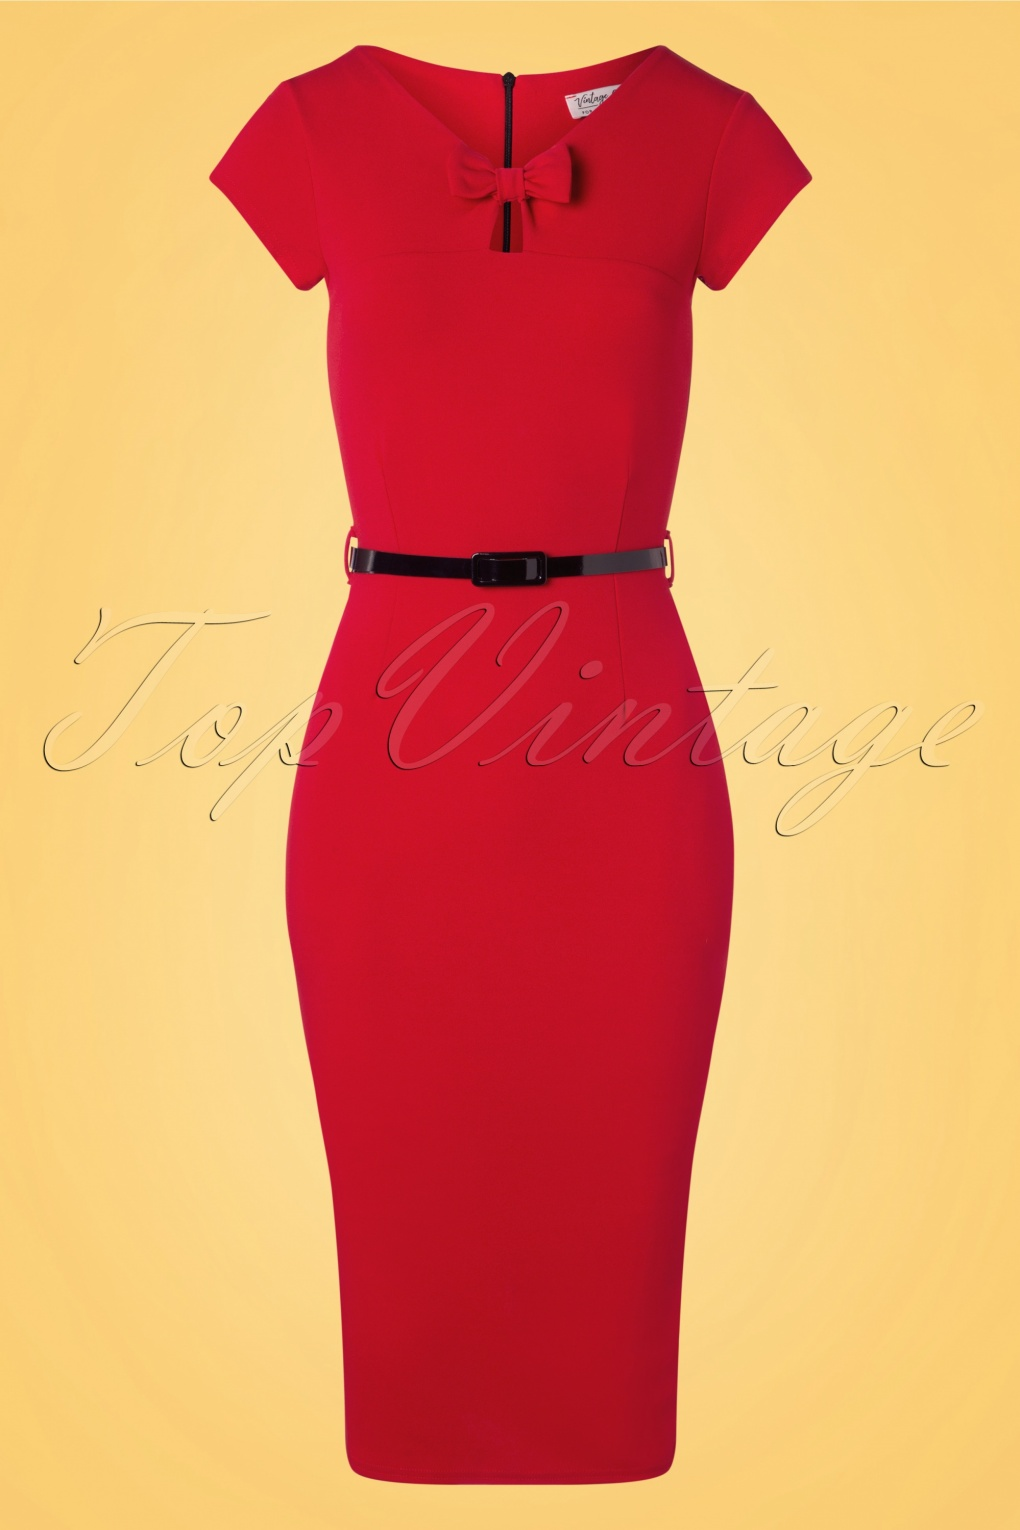 Sailor Dresses, Nautical Theme Dress, WW2 Dresses 50s Becka Bow Pencil Dress in Deep Red £53.51 AT vintagedancer.com